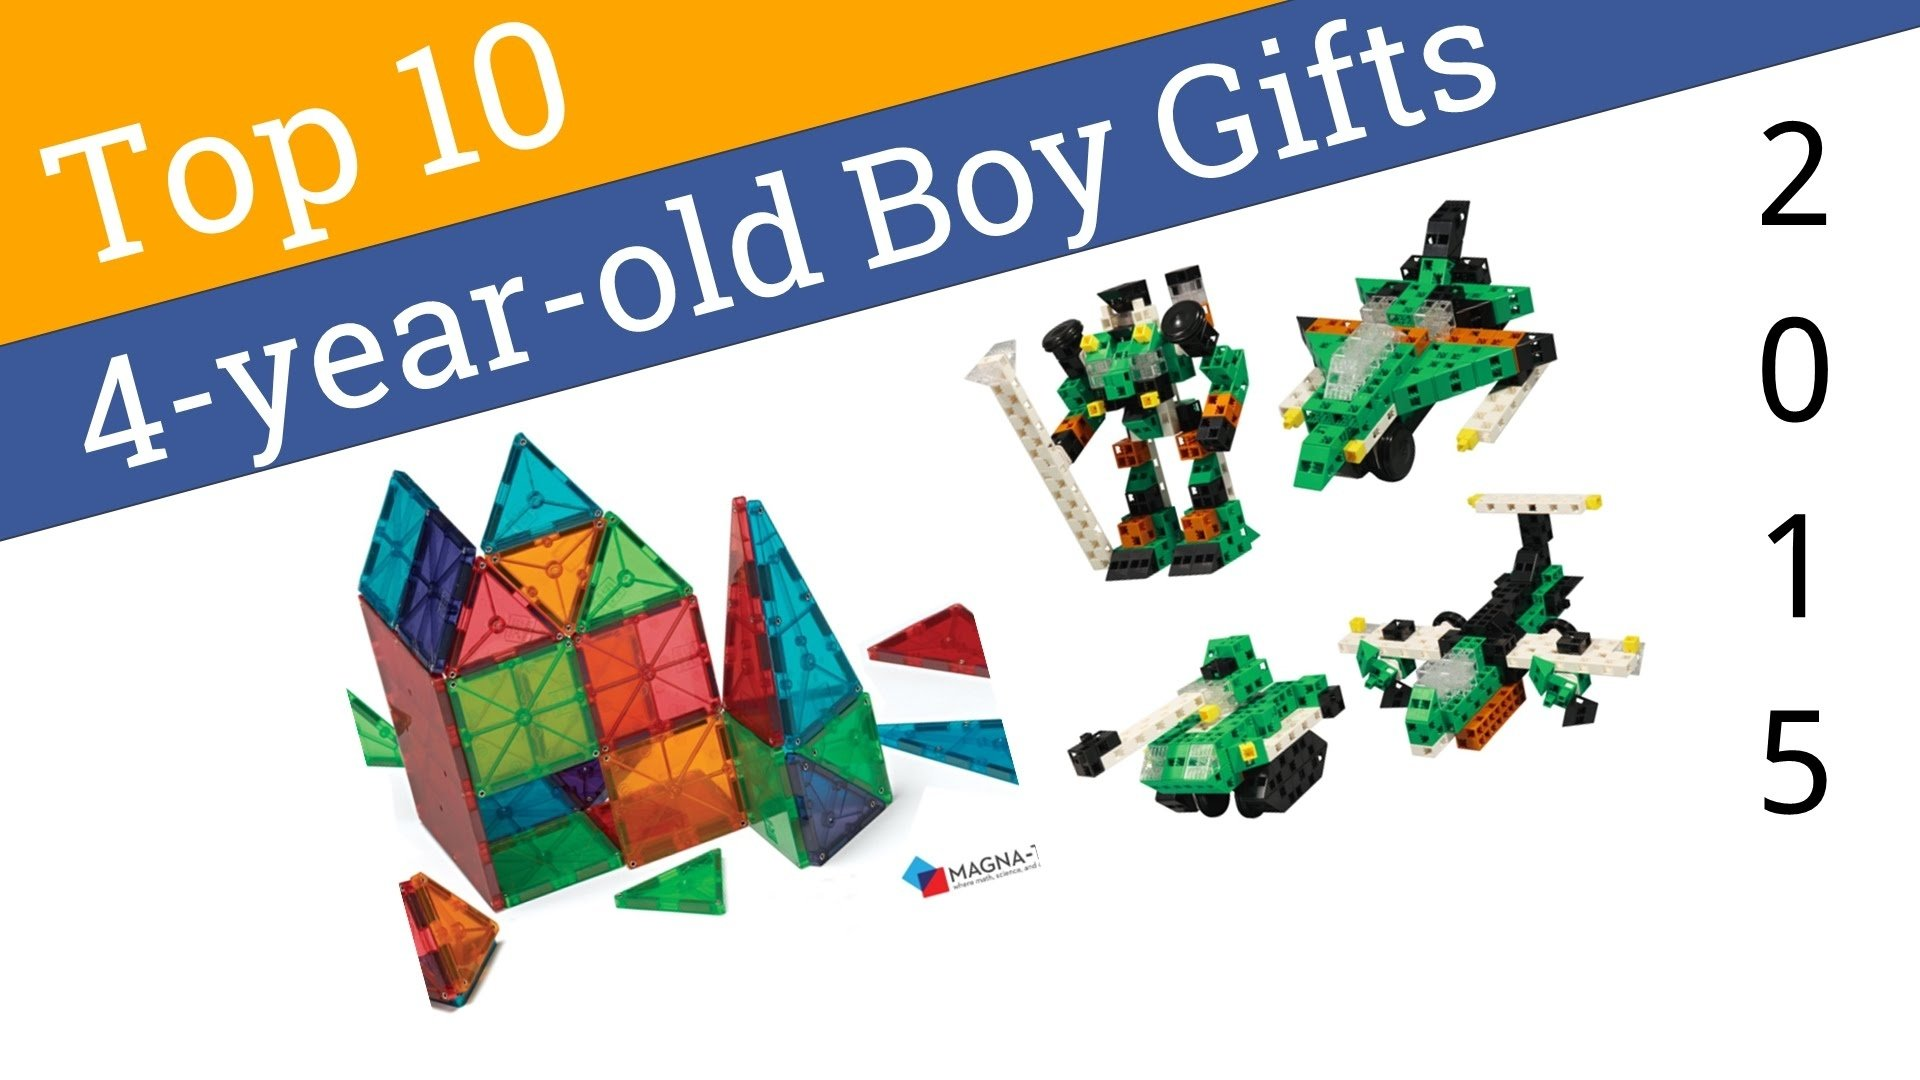 10 Unique Gift Ideas For Four Year Old Boy 10 best gifts for 4 year old boys 2015 youtube 6 2020